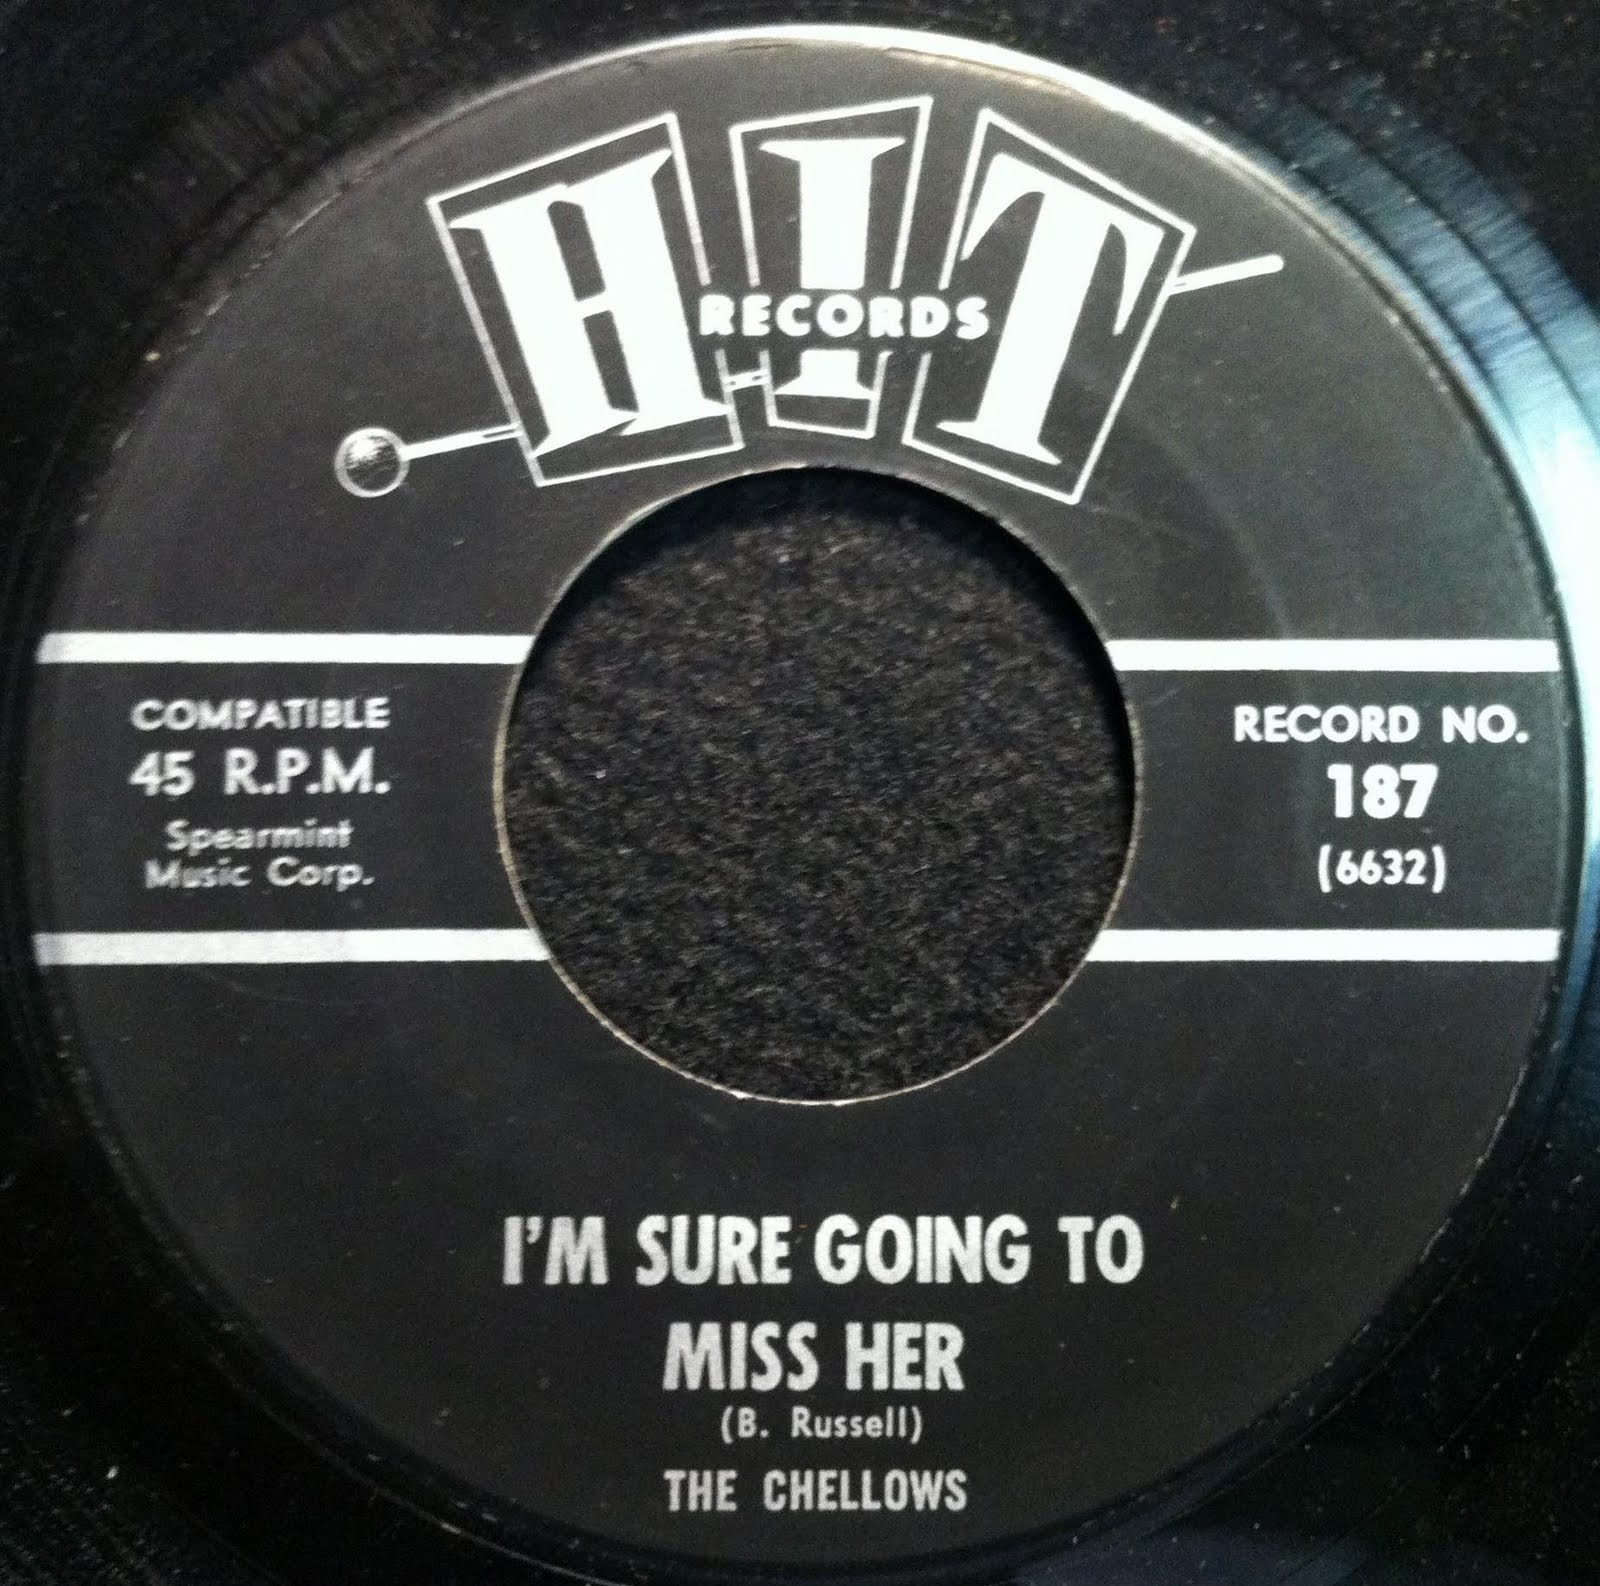 this record is not a cover of the gary lewis and the playboys hit song sure gonna miss her this is in fact the original recording of that song